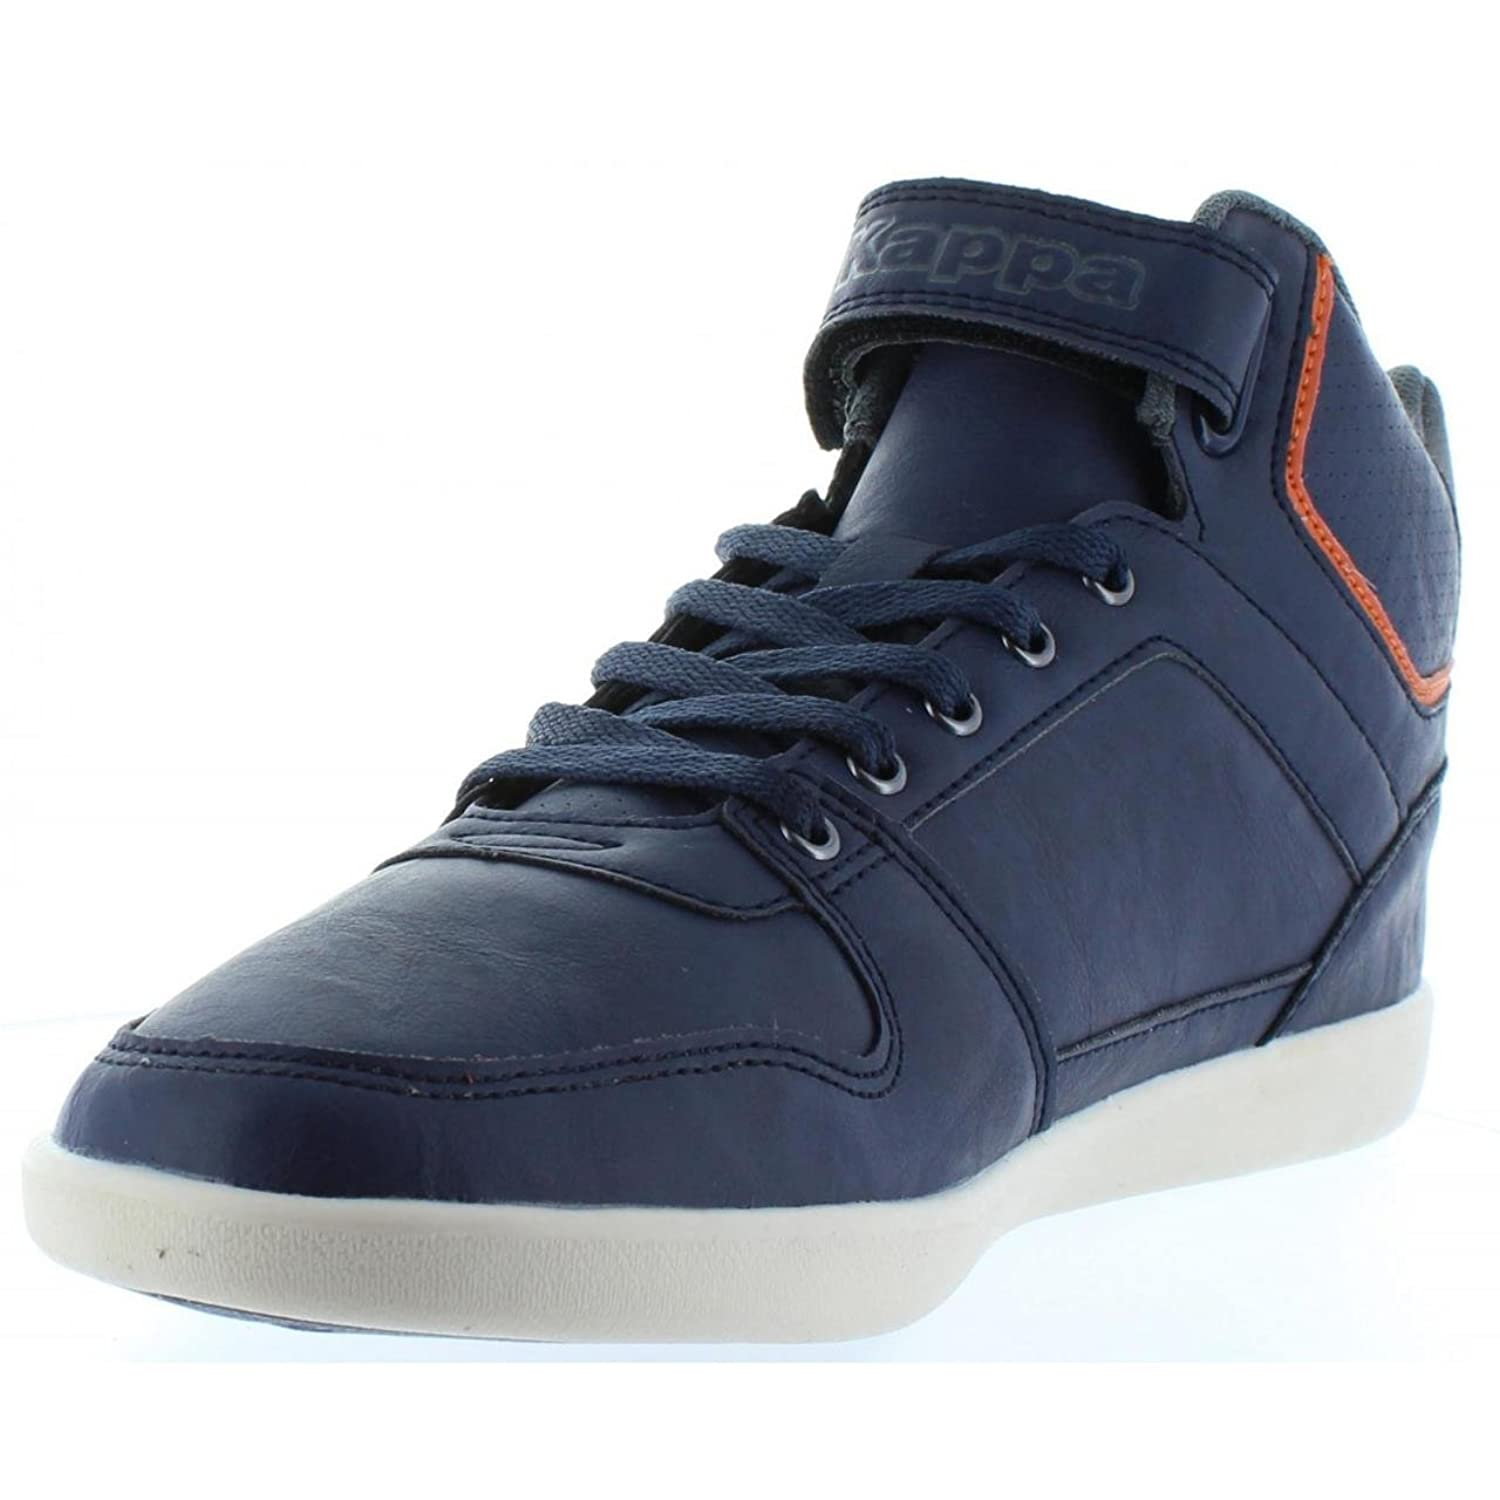 Boy and Girl and Women Mid boots KAPPA 303JS30 USSEL 930 BLUE NAVY Size 38:  Amazon.co.uk: Shoes & Bags